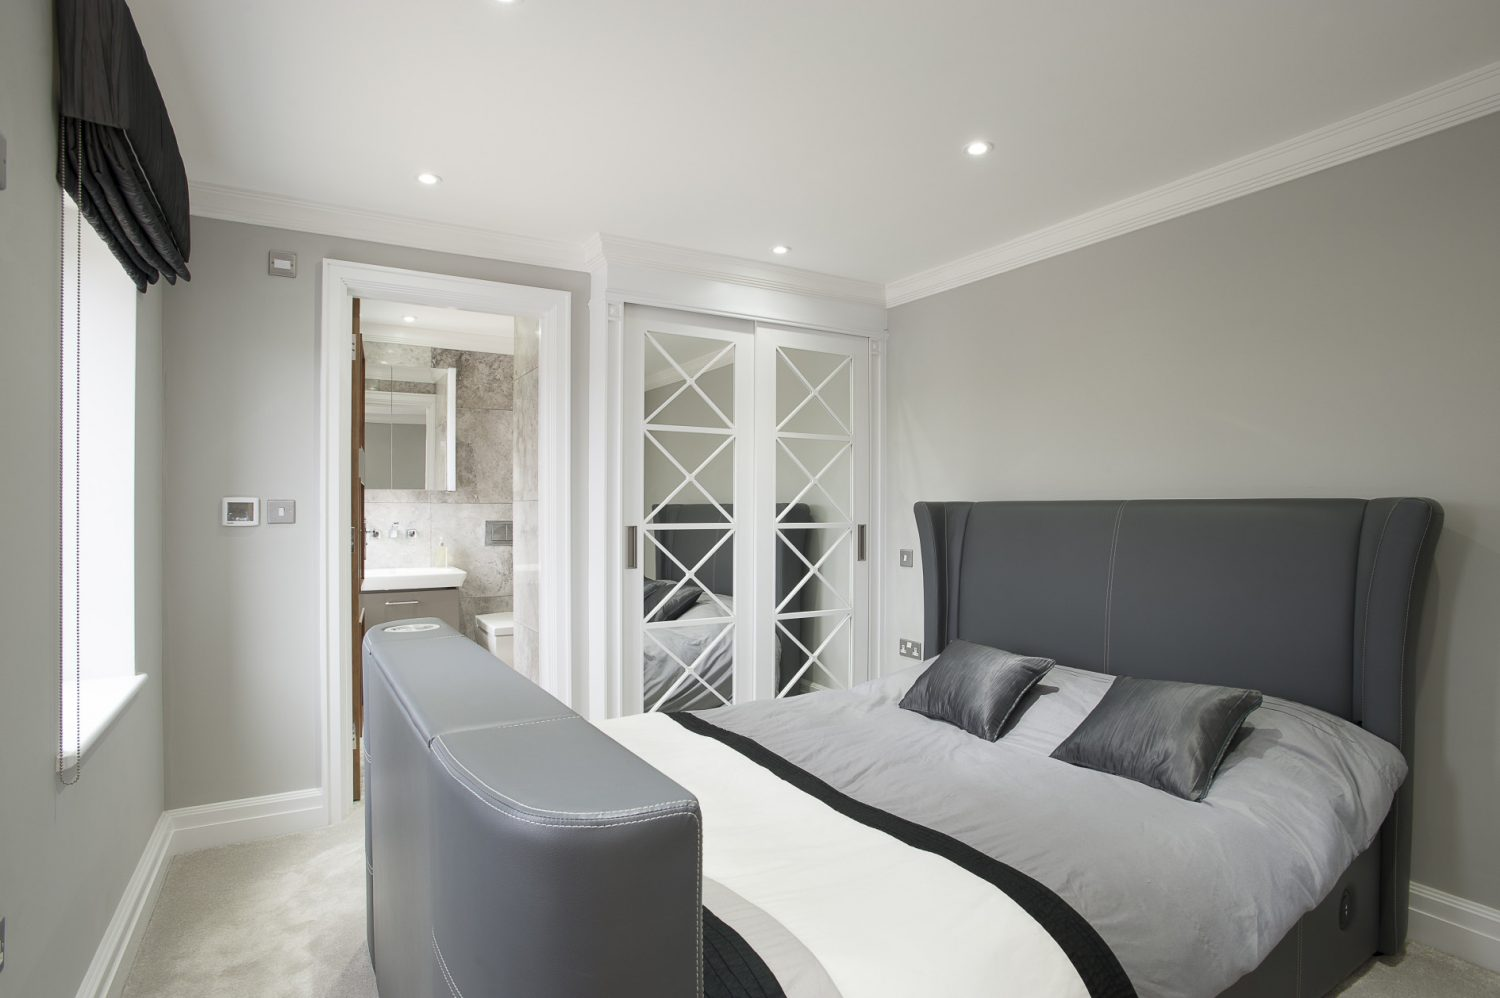 The two guest rooms feature grey leather beds from the feet of which rise flat screen TVs